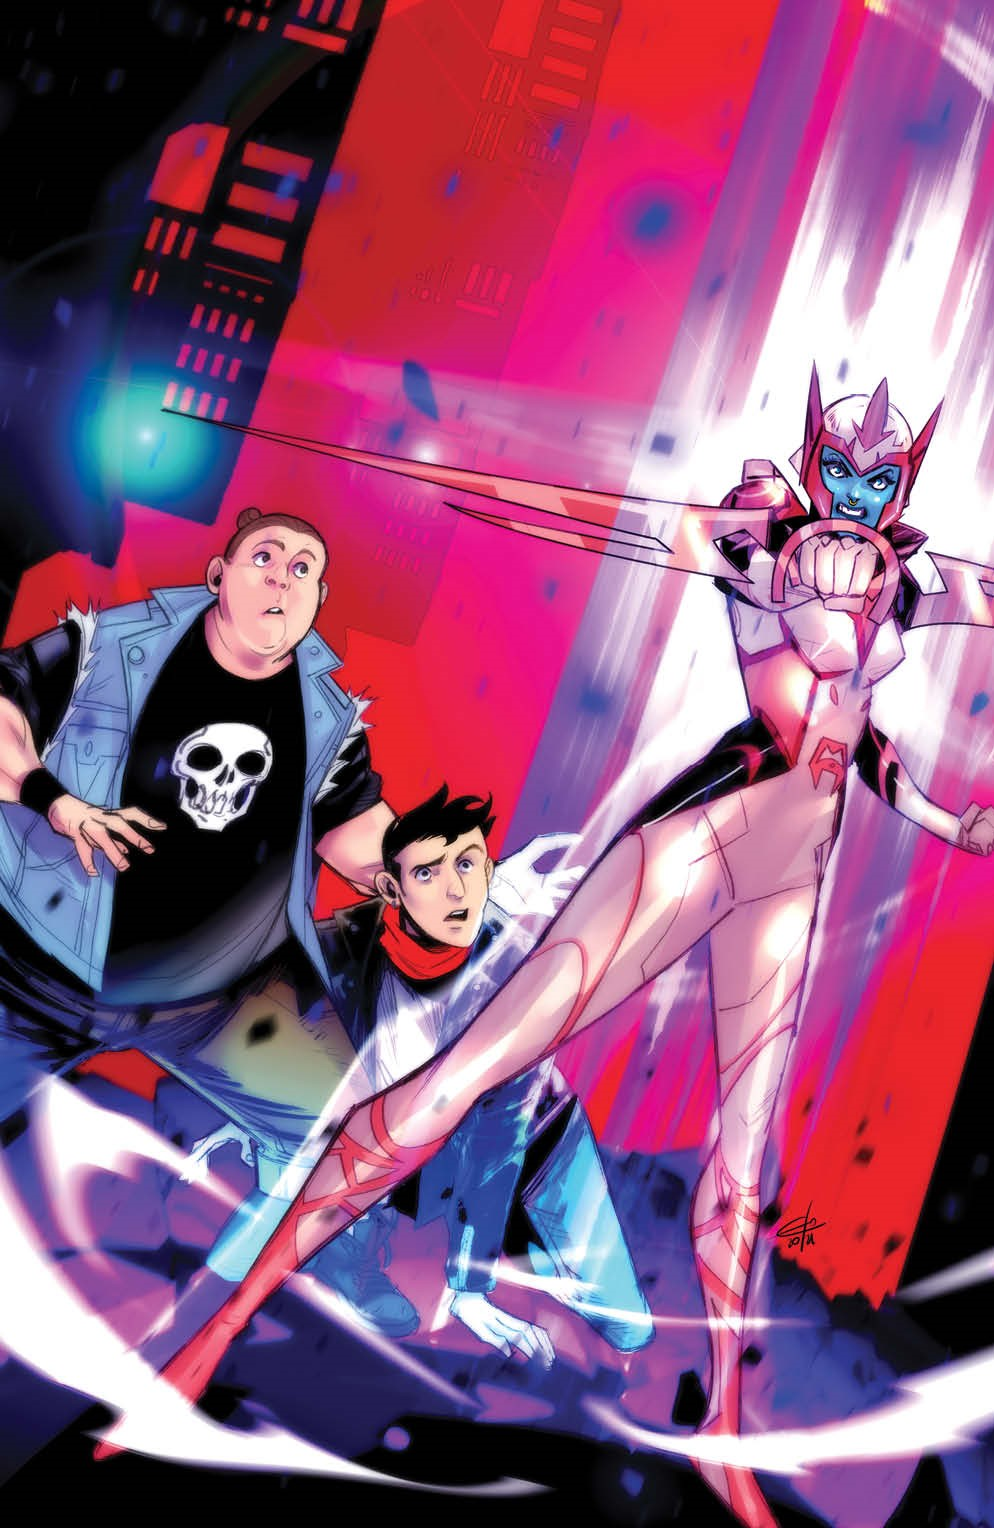 MightyMorphin_012_Cover_D_Variant_Undressed ComicList Previews: MIGHTY MORPHIN #12